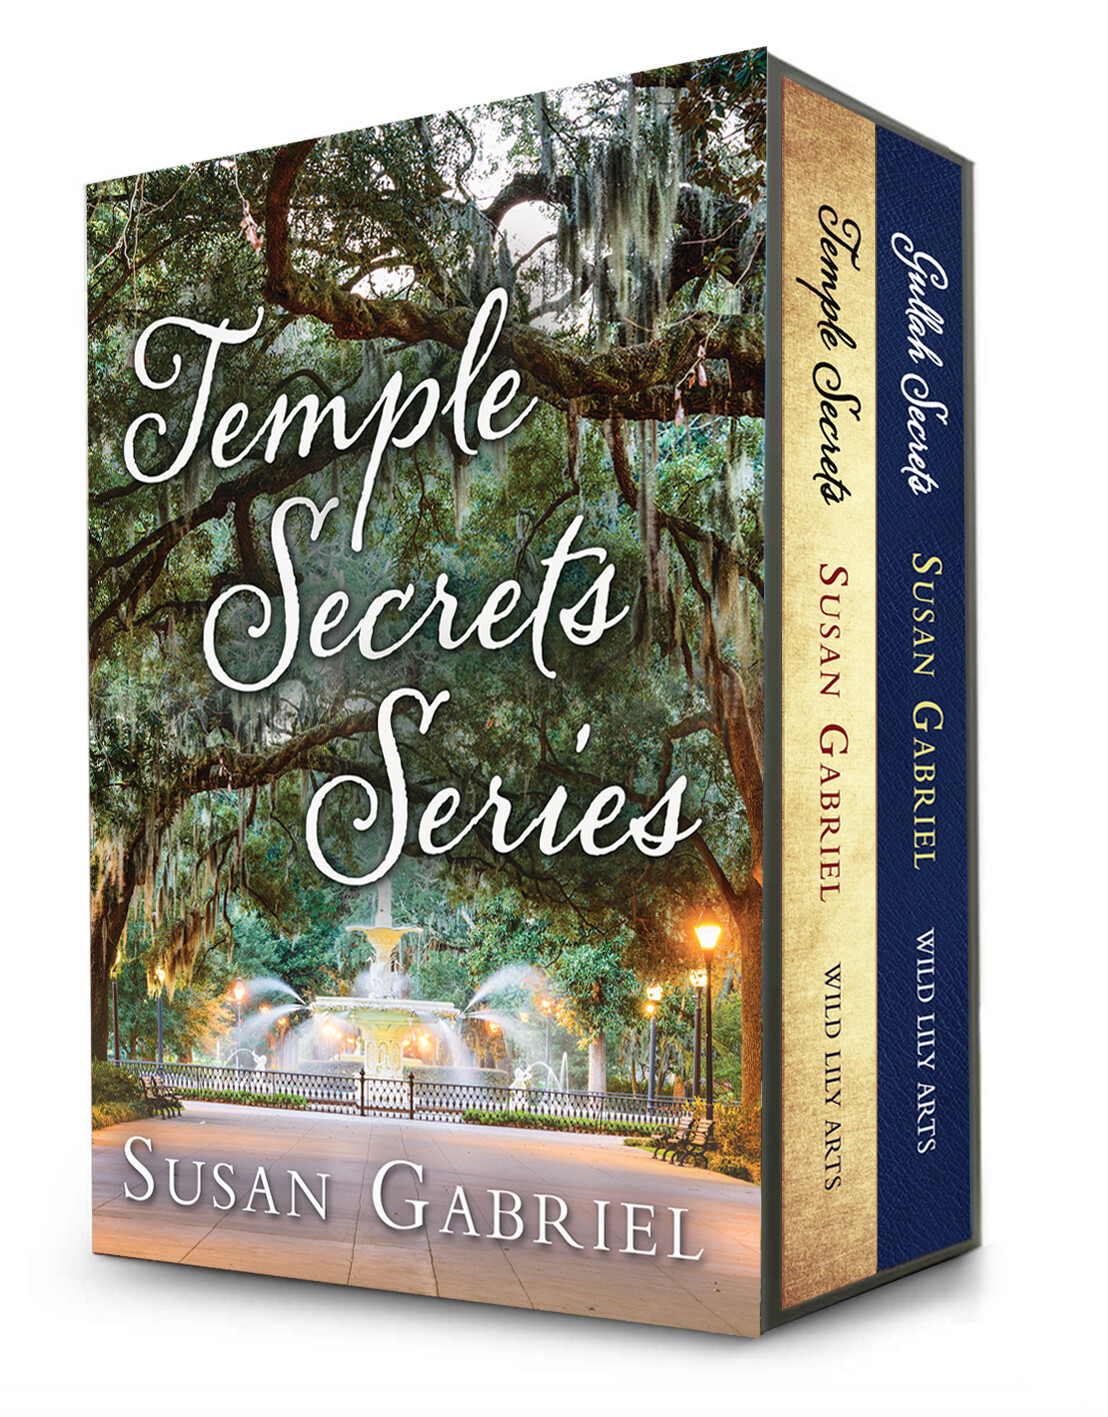 Temple Secrets Series - one volume paperback, autographed by the author